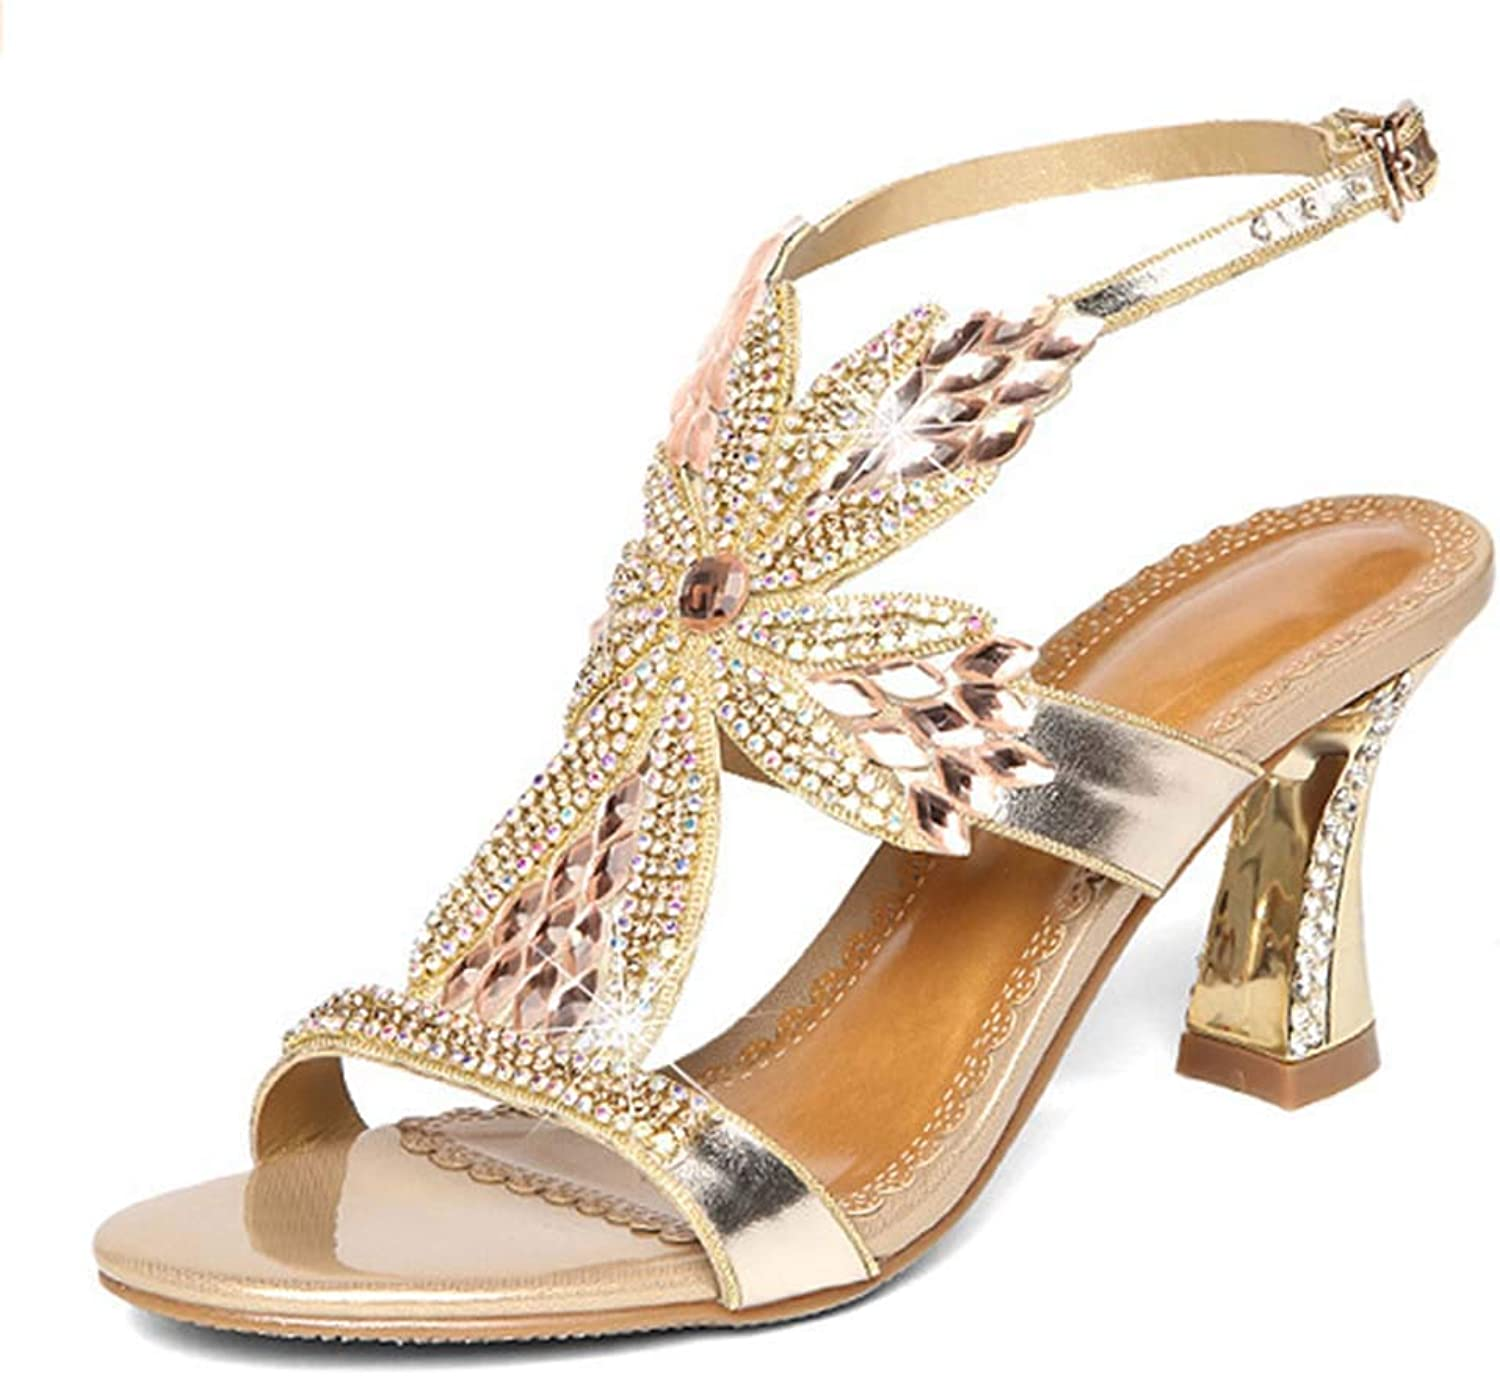 Women's Sandals high Heel Leather Rhinestone Sandals Thick with Diamond-Encrusted Open Toe Sandals Summer New